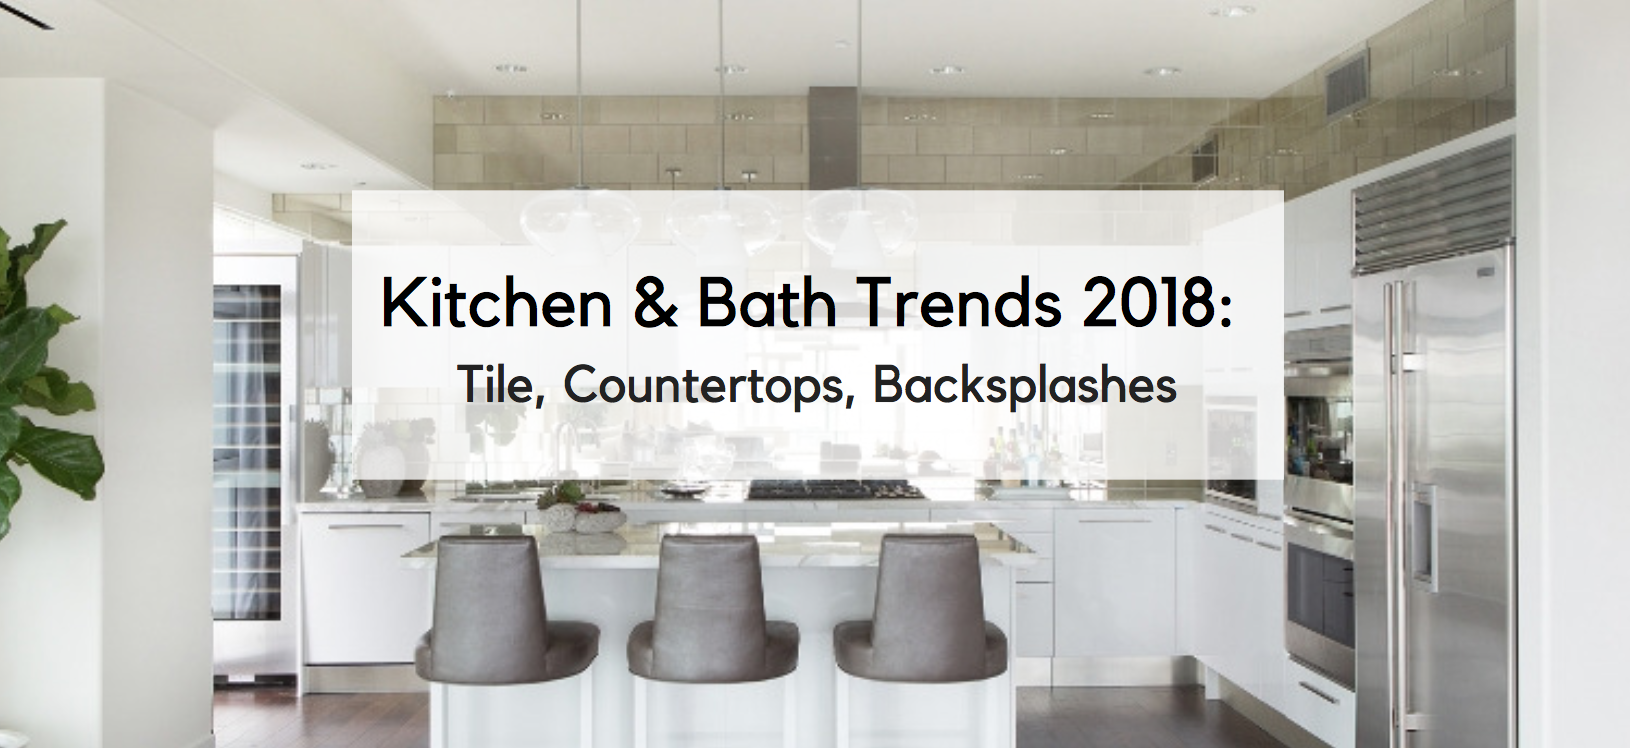 Kitchen And Bath Trends 2018 Tile Countertops Backsplashes Socalcontractor Blog